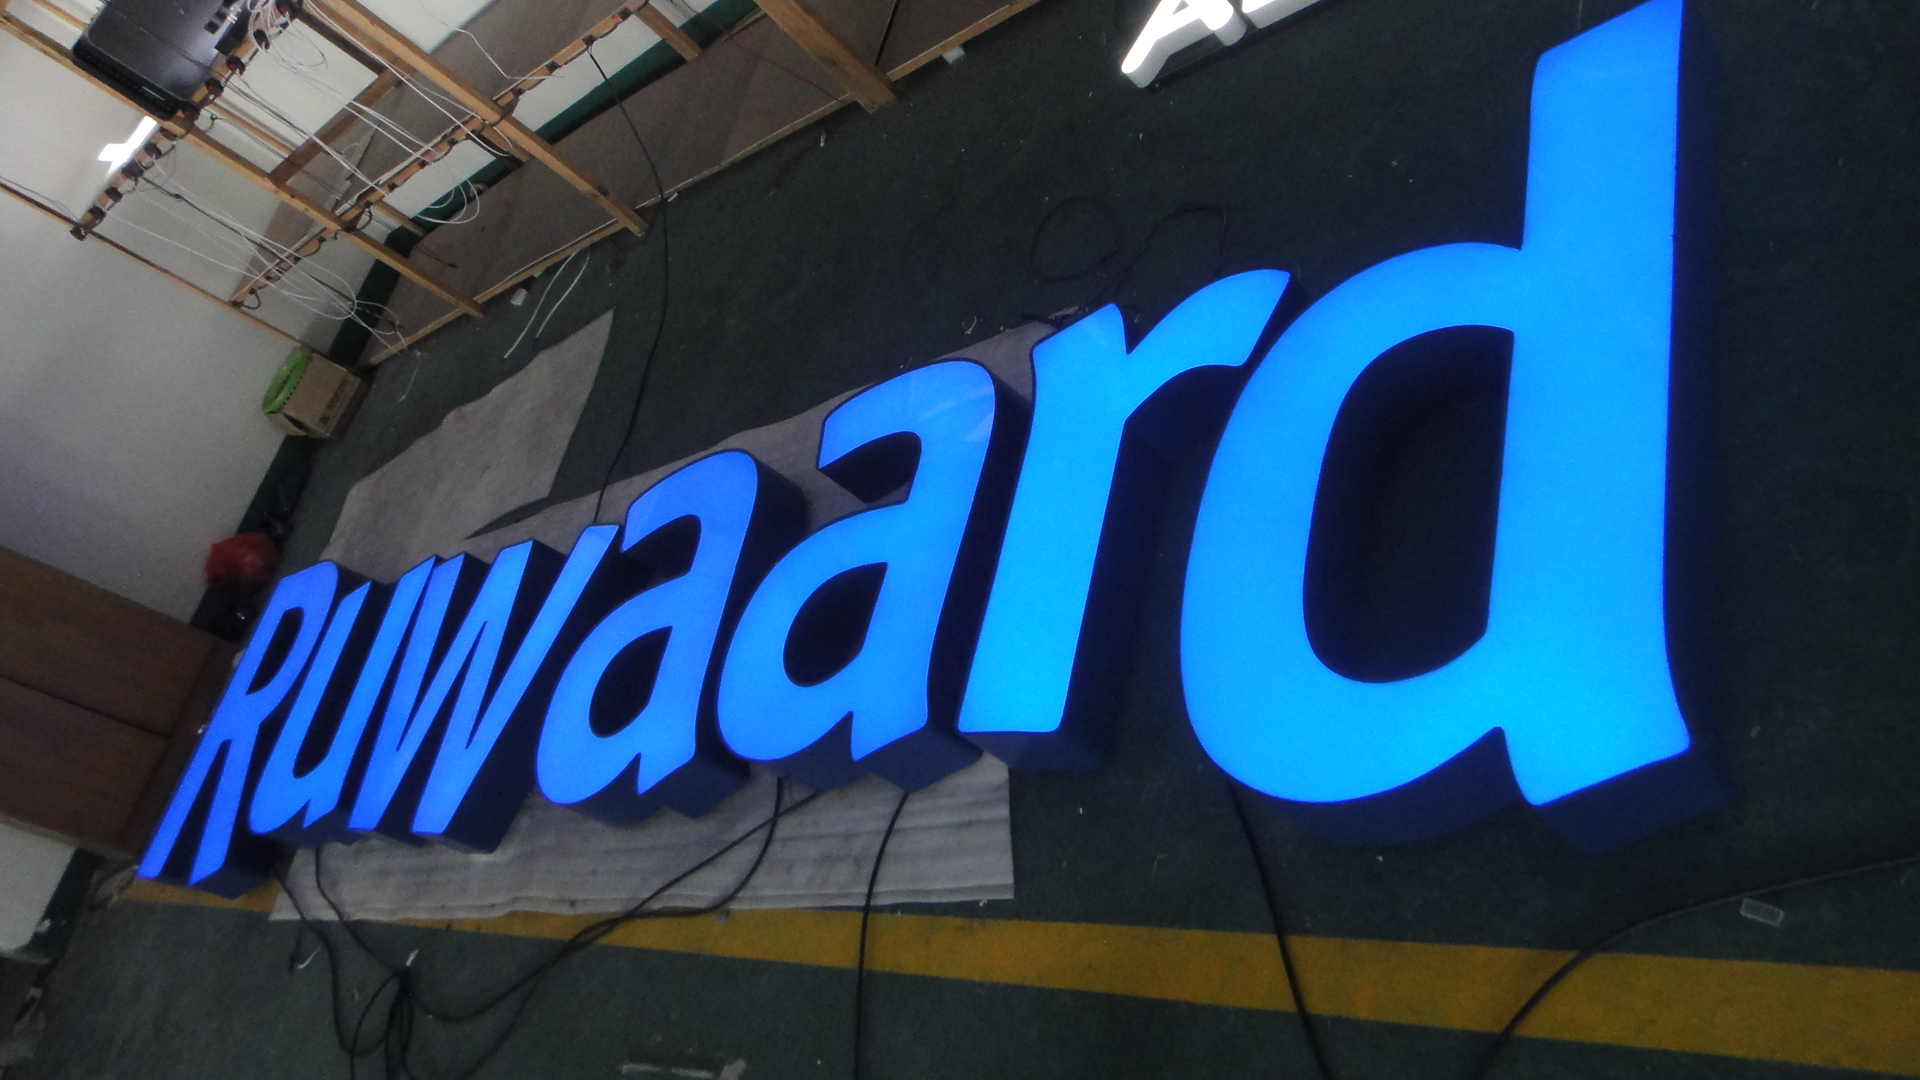 front lit led channel letter front illuminated